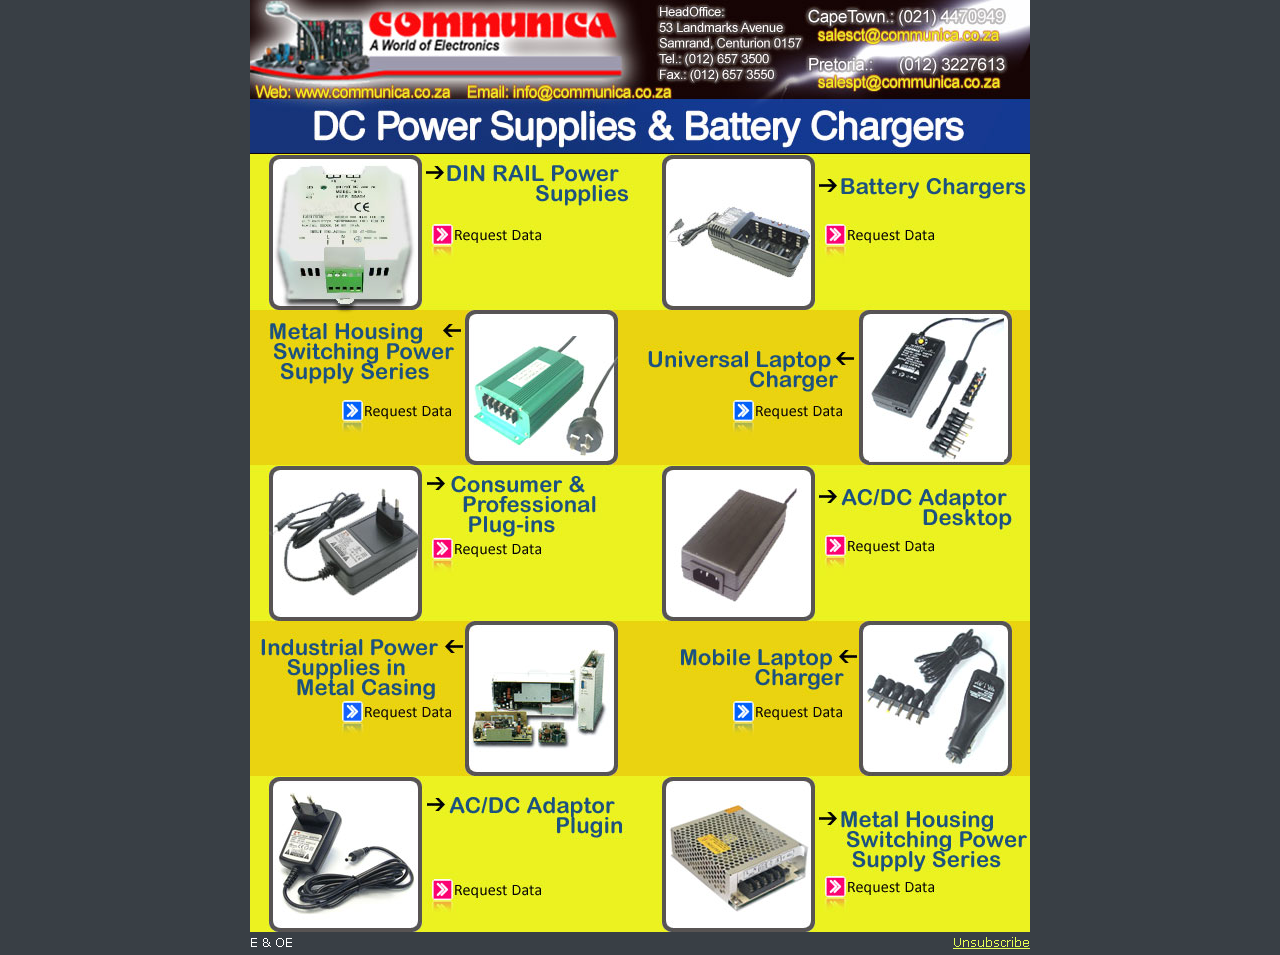 DC Power Supplies & Battery Chargers